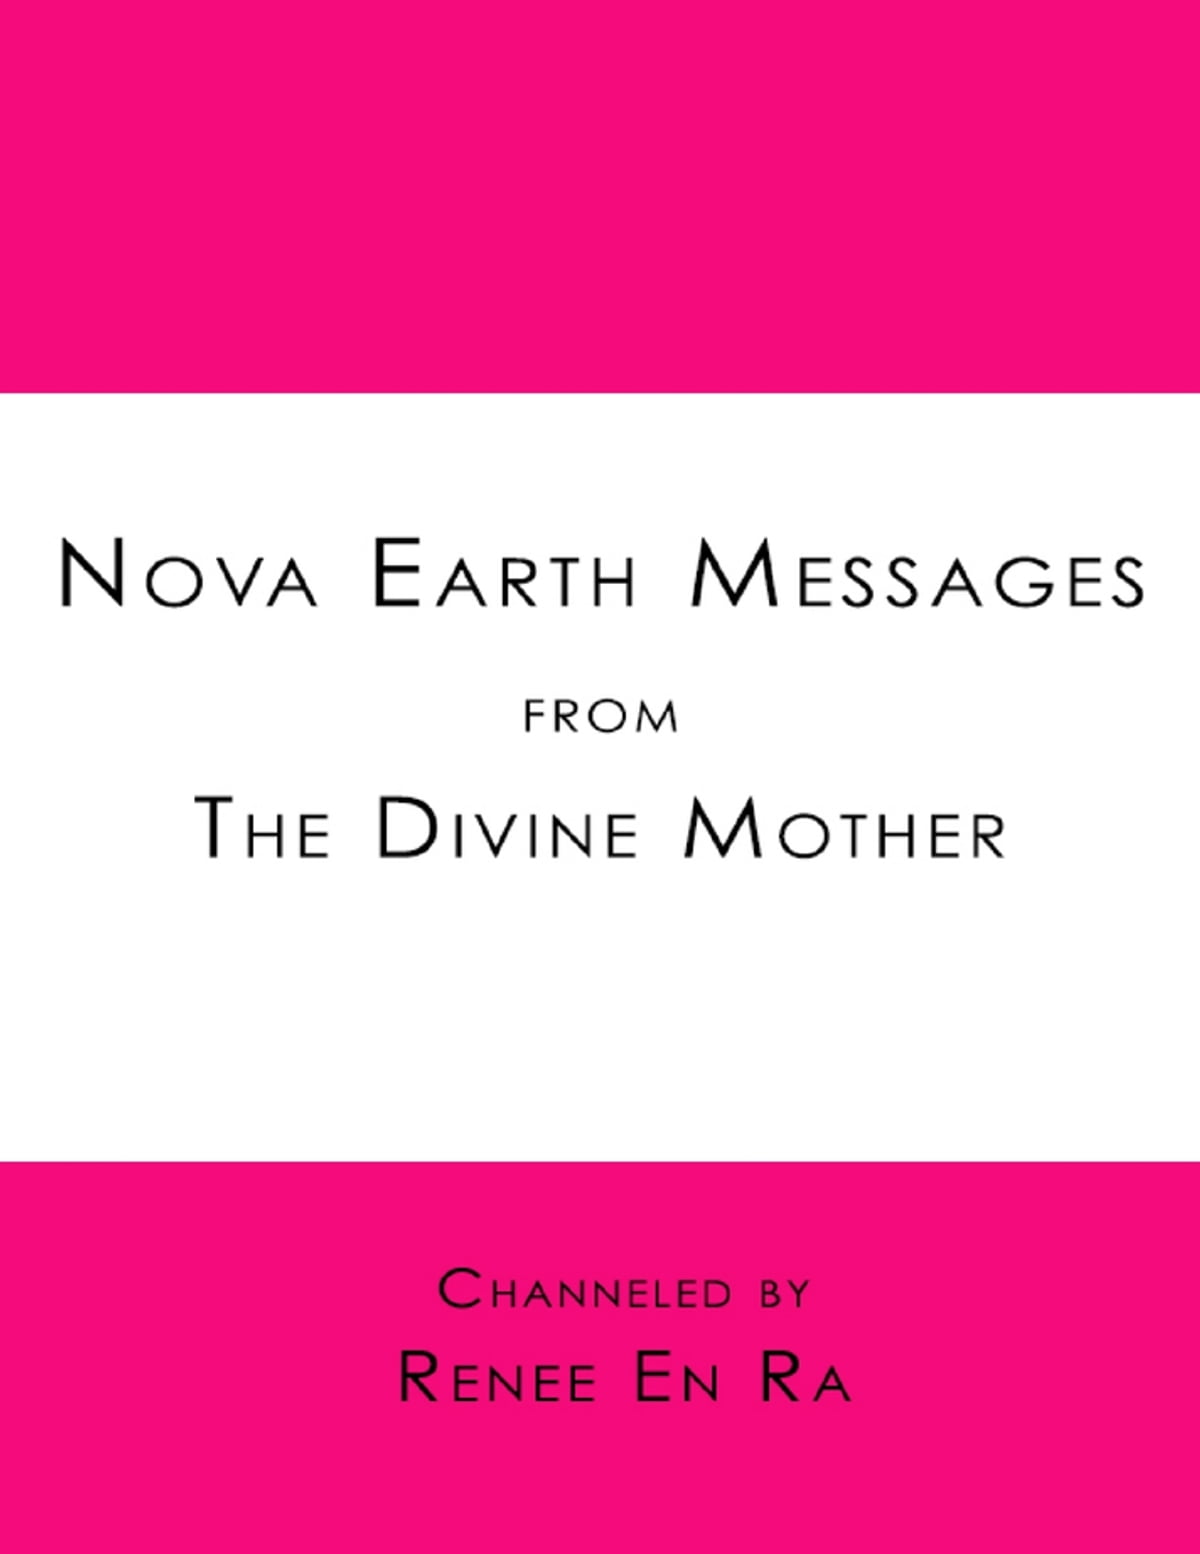 Nova Earth Messages from the Divine Mother eBook by Renee En